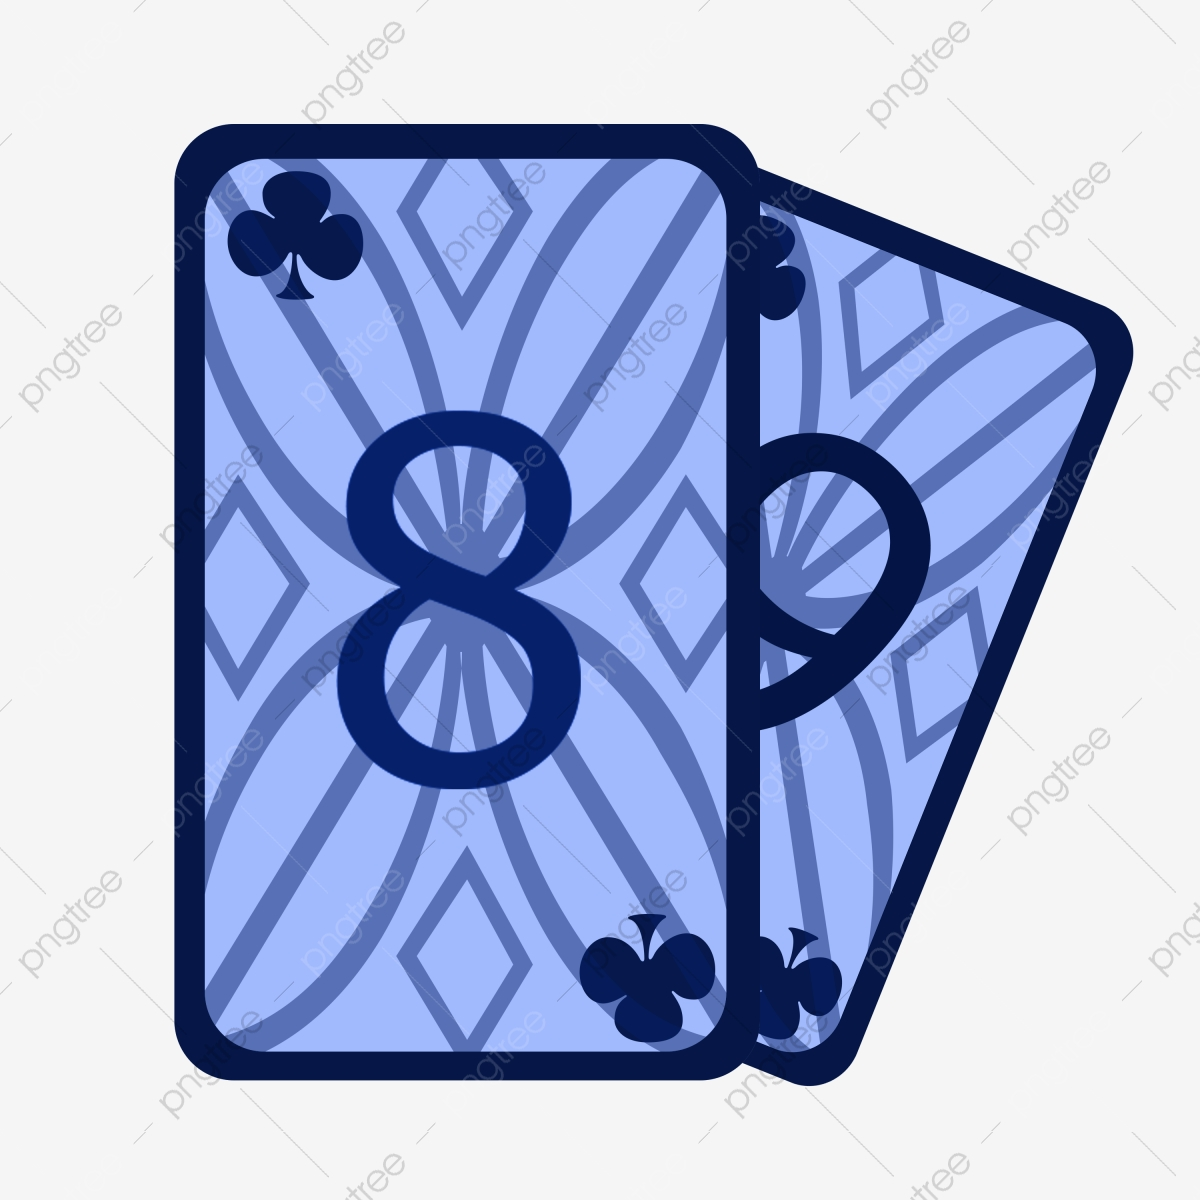 Illustration Of Poker Game Cartoon Illustrations Game Consoles Playing Games Png Transparent Clipart Image And Psd File For Free Download